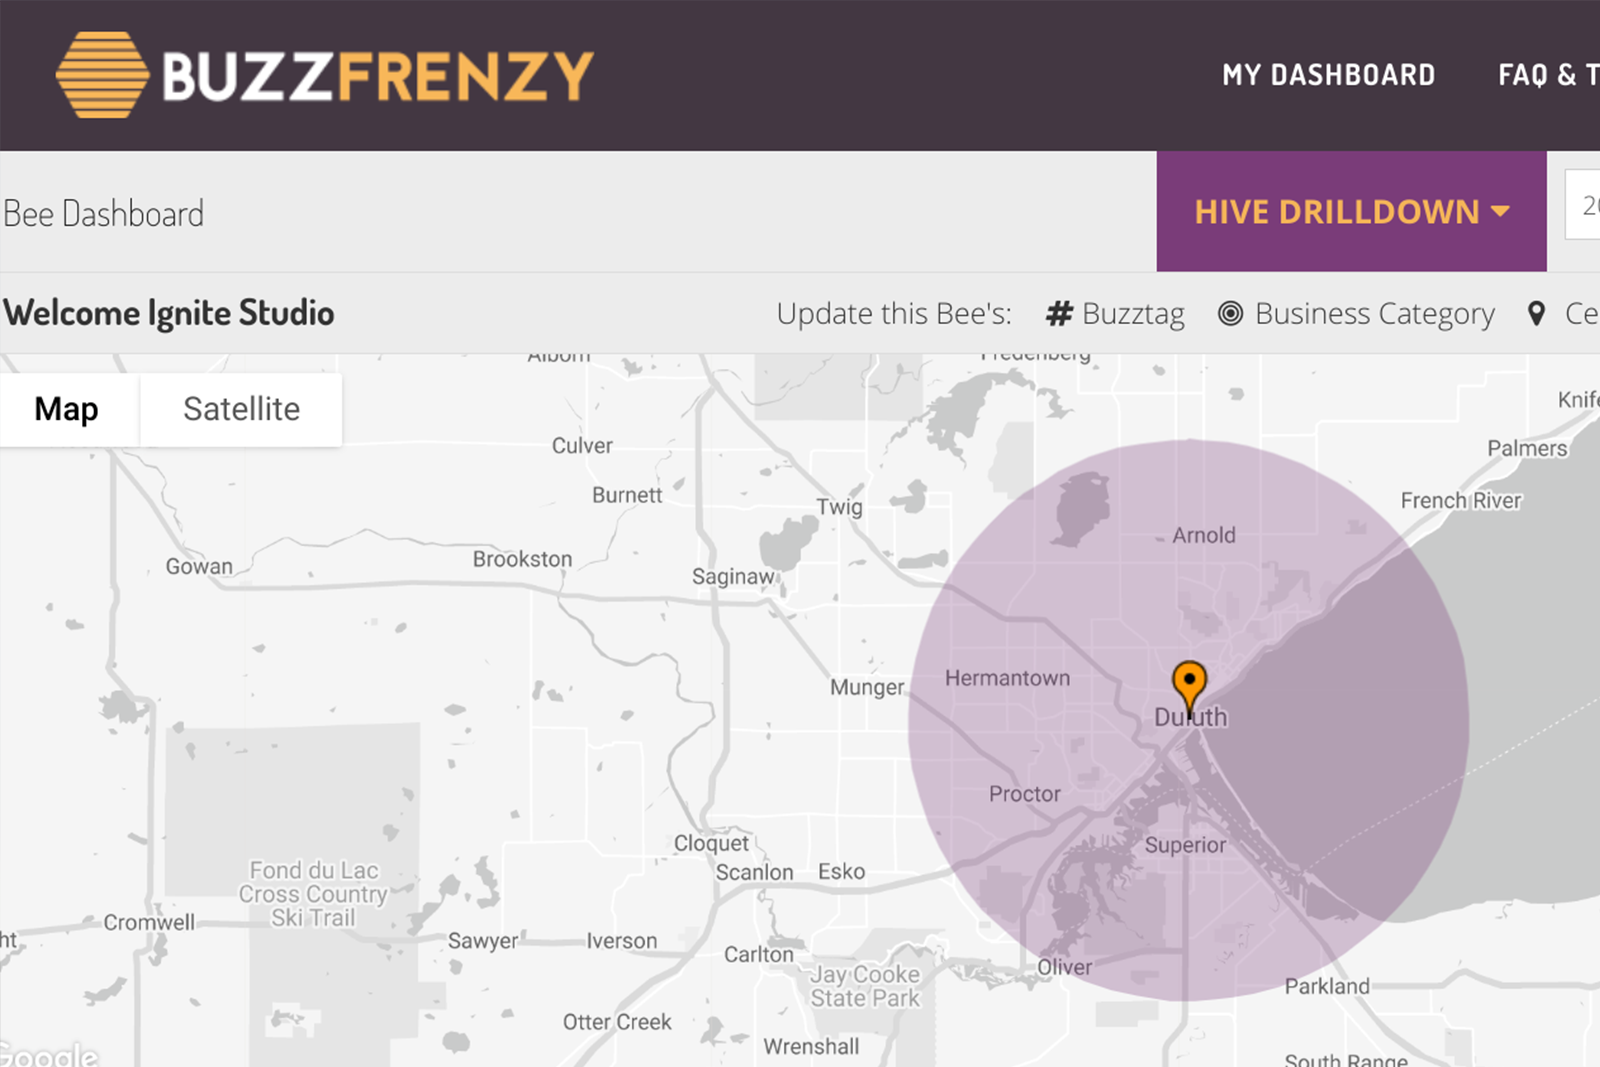 Buzz Frenzy Dashboard